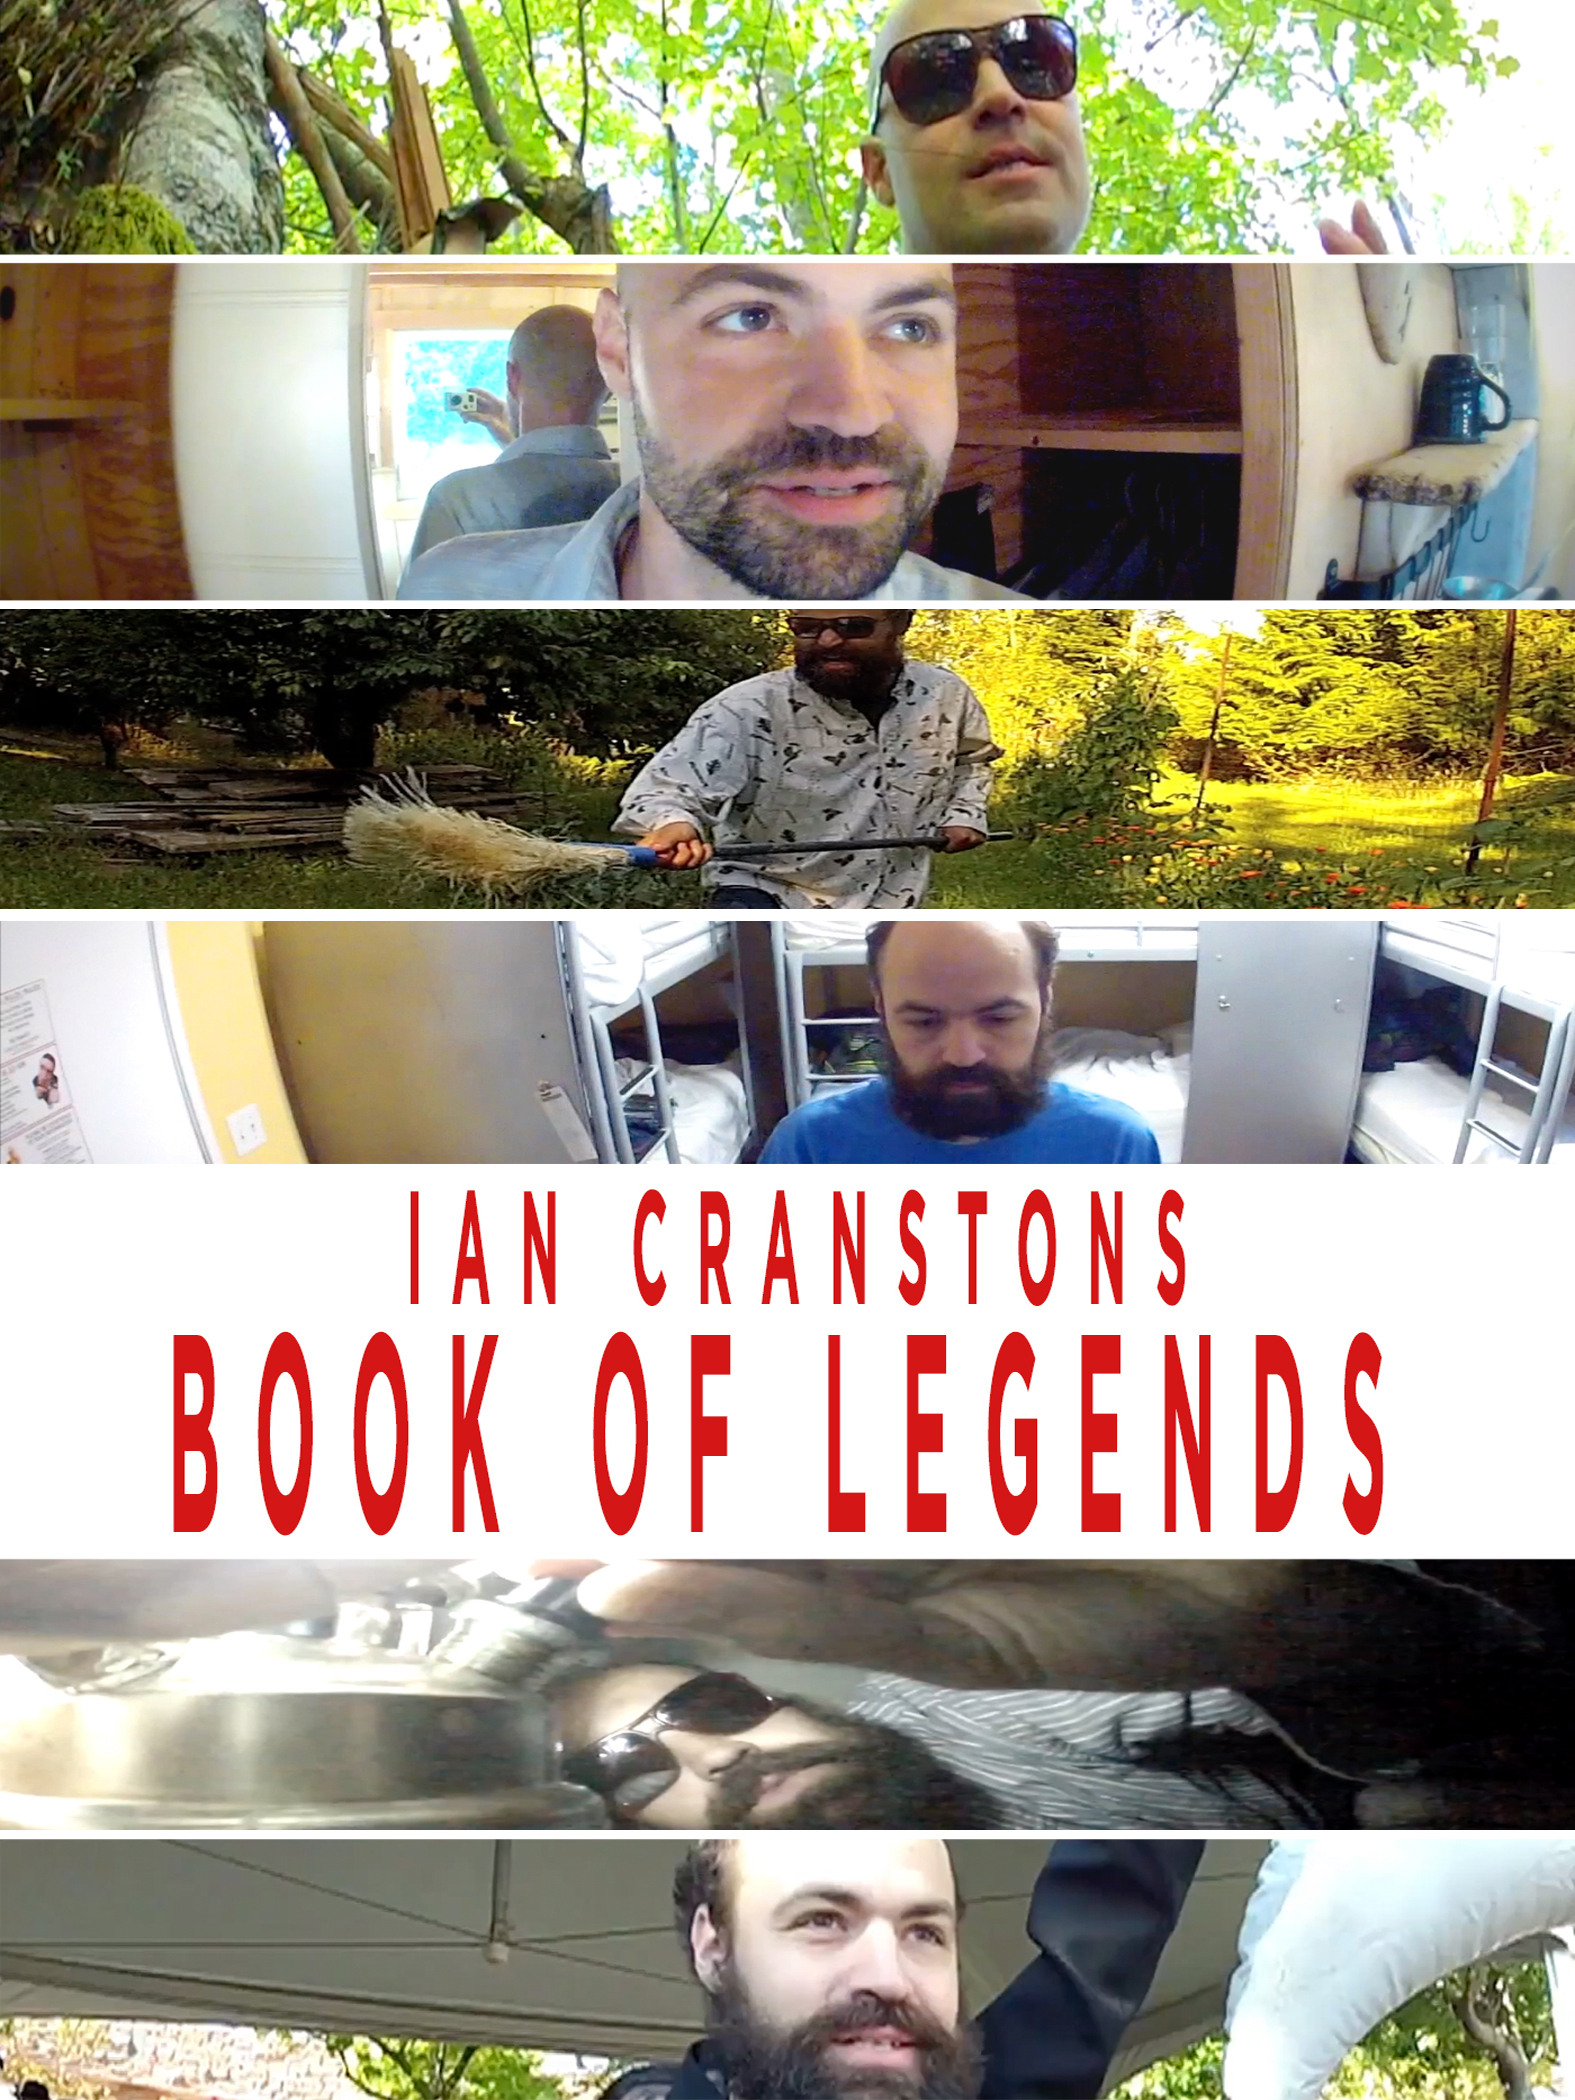 Ian Cranstons Book Of Legends